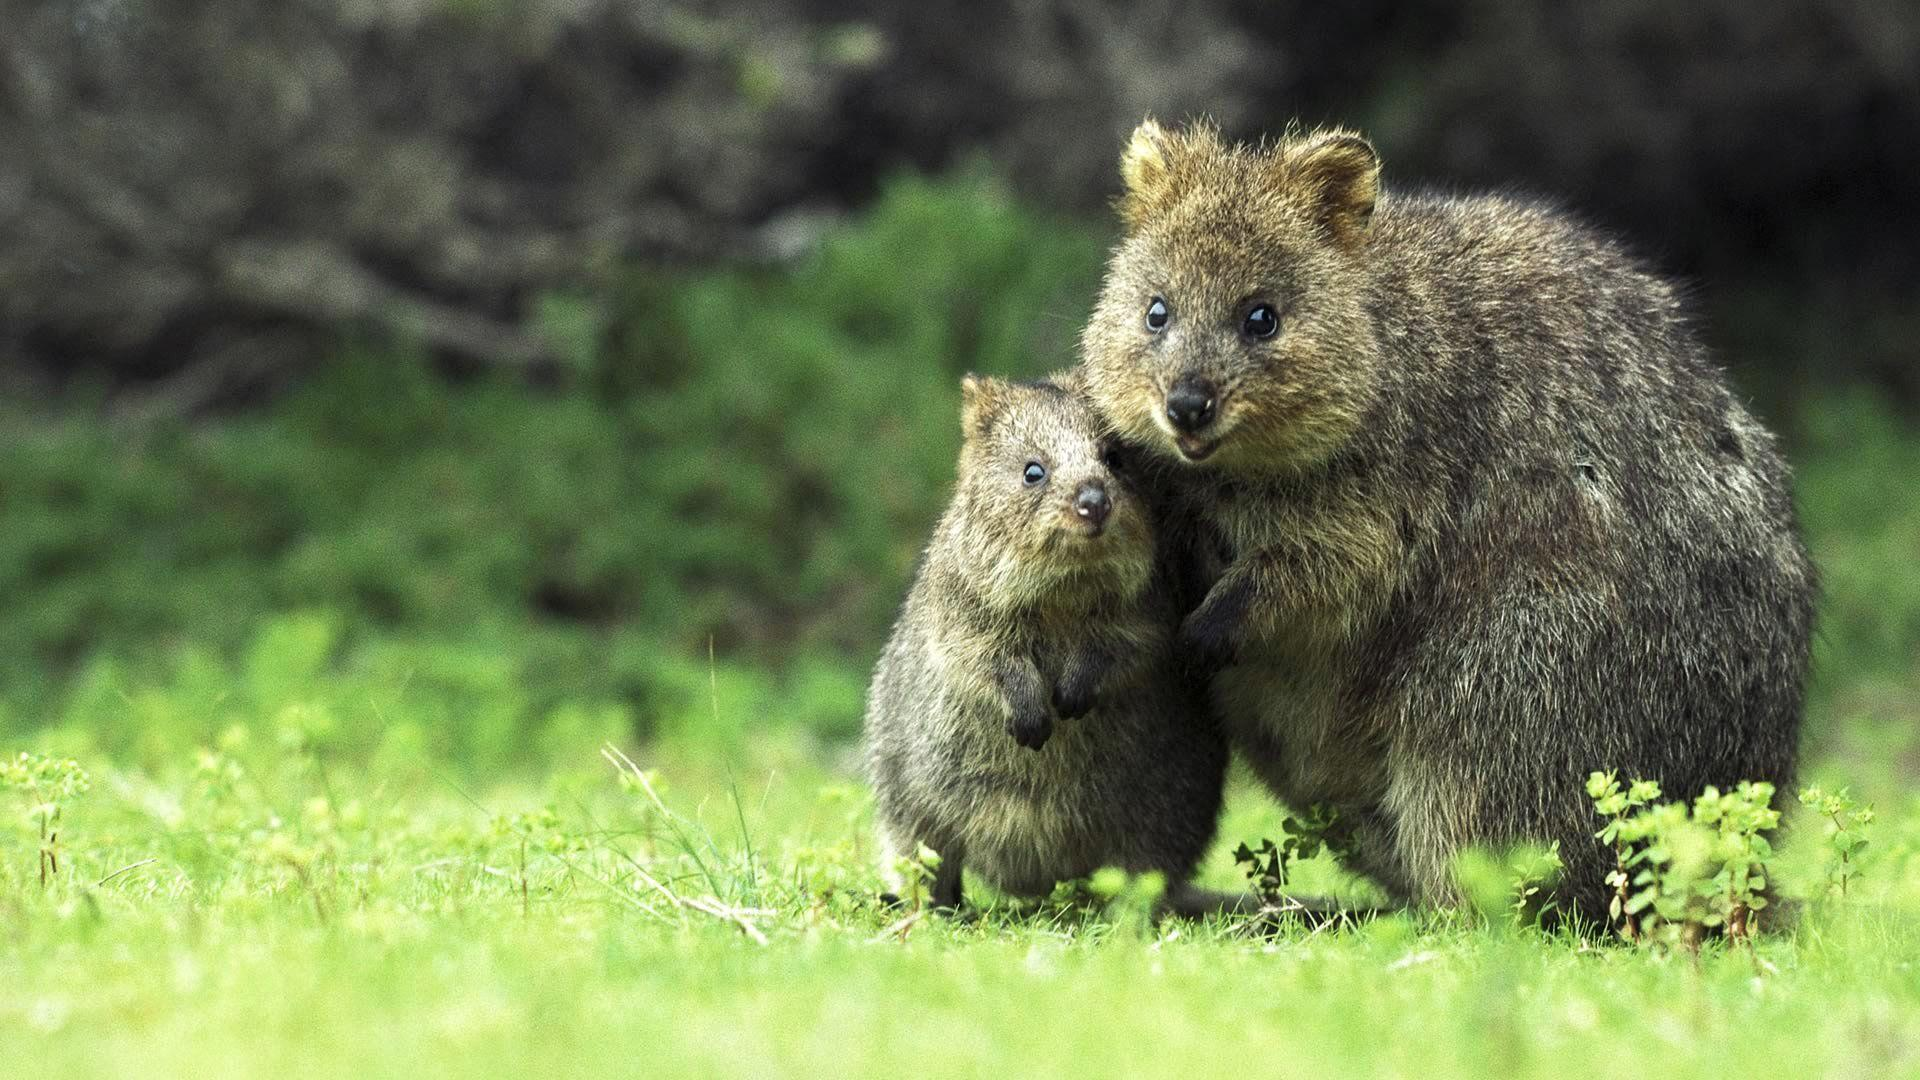 Quokka Wallpapers - Wallpaper Cave